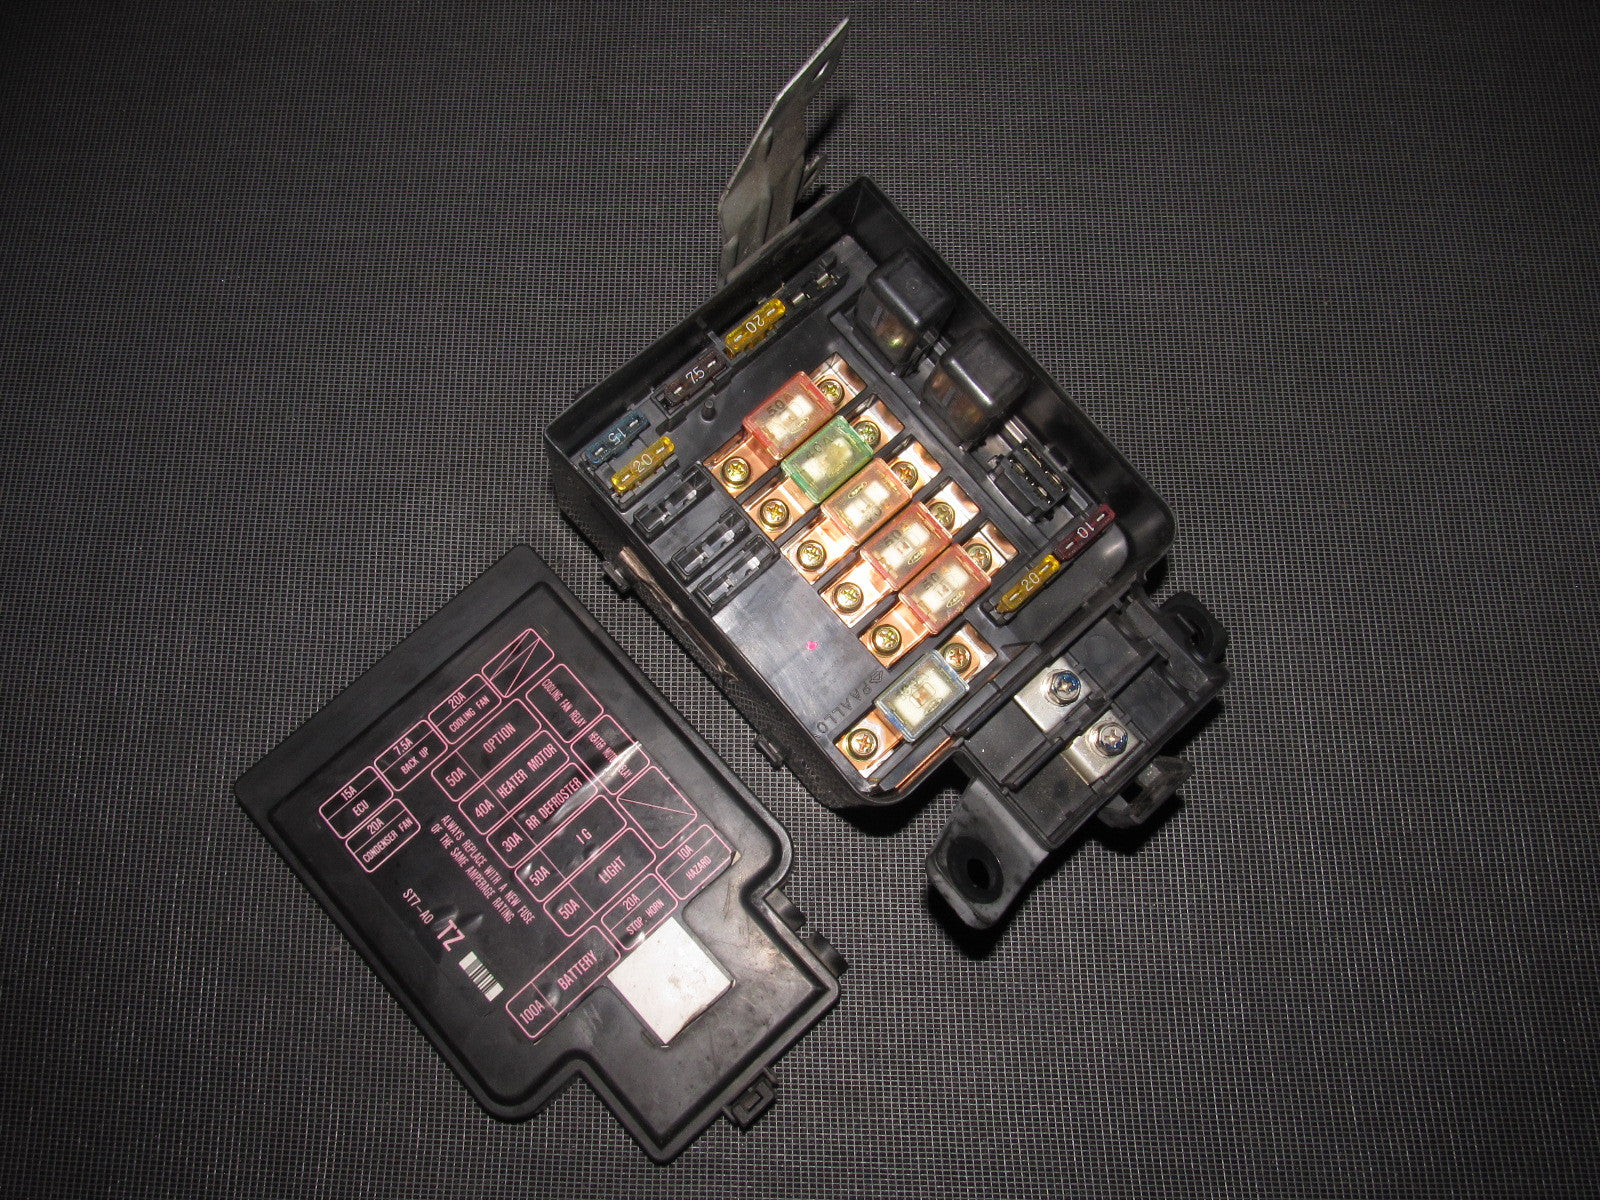 99 civic fuse diagram photo album diagram 96 01 acura integra oem engine fuse box b18b1 autopartone com